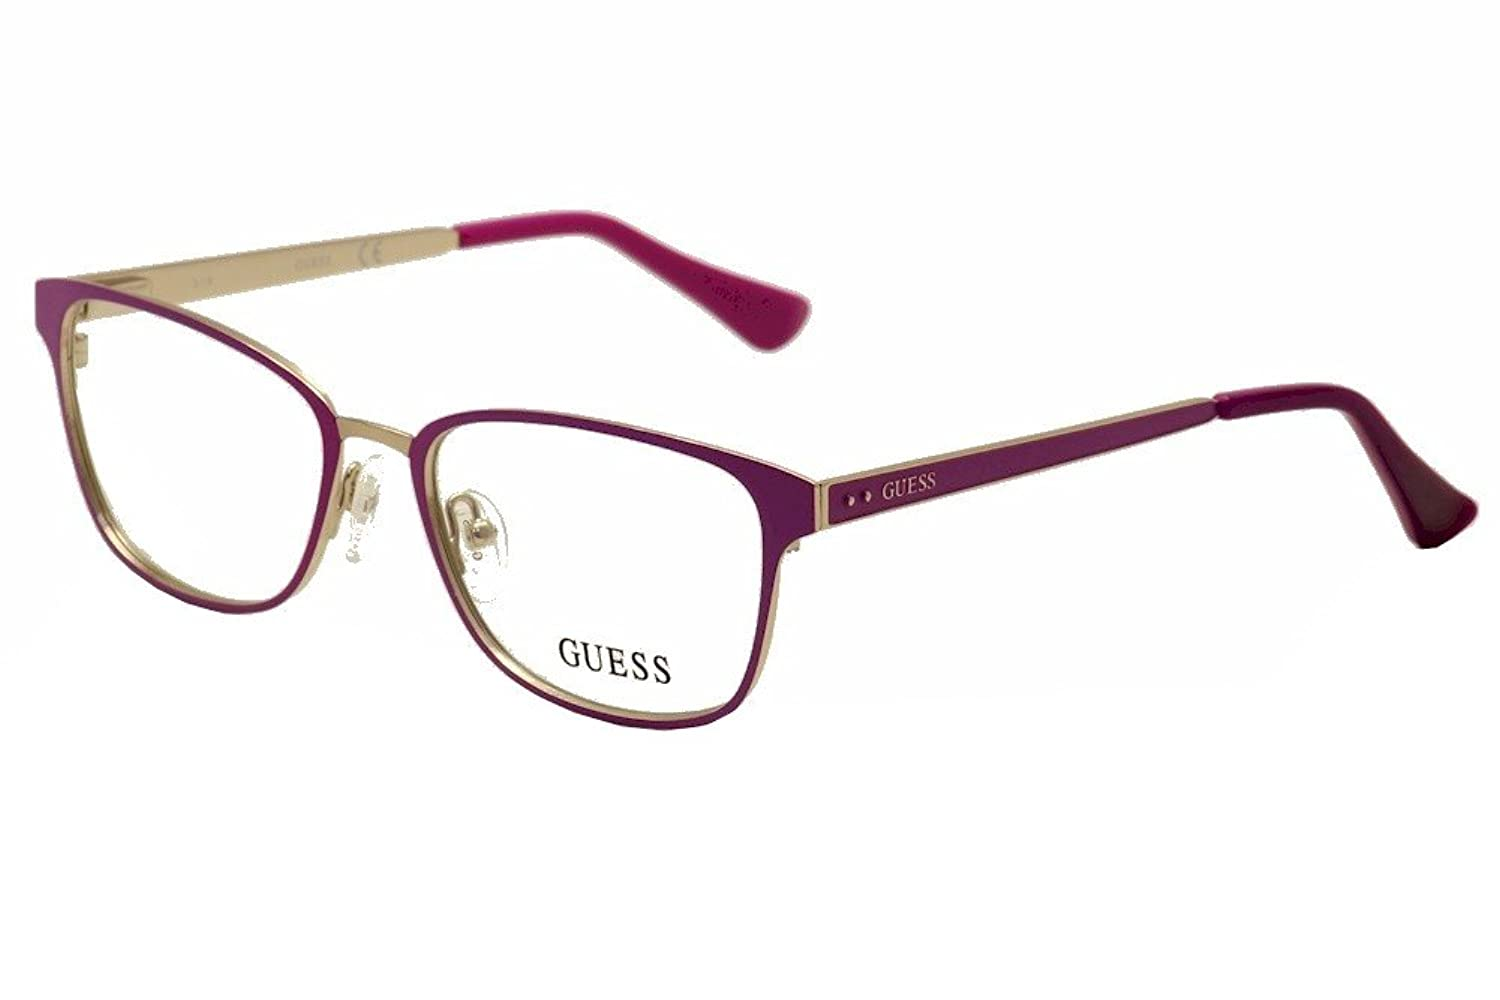 Guess Women\'s Eyeglasses GU2550 GU/2550 076 Plum Full Rim Optical ...